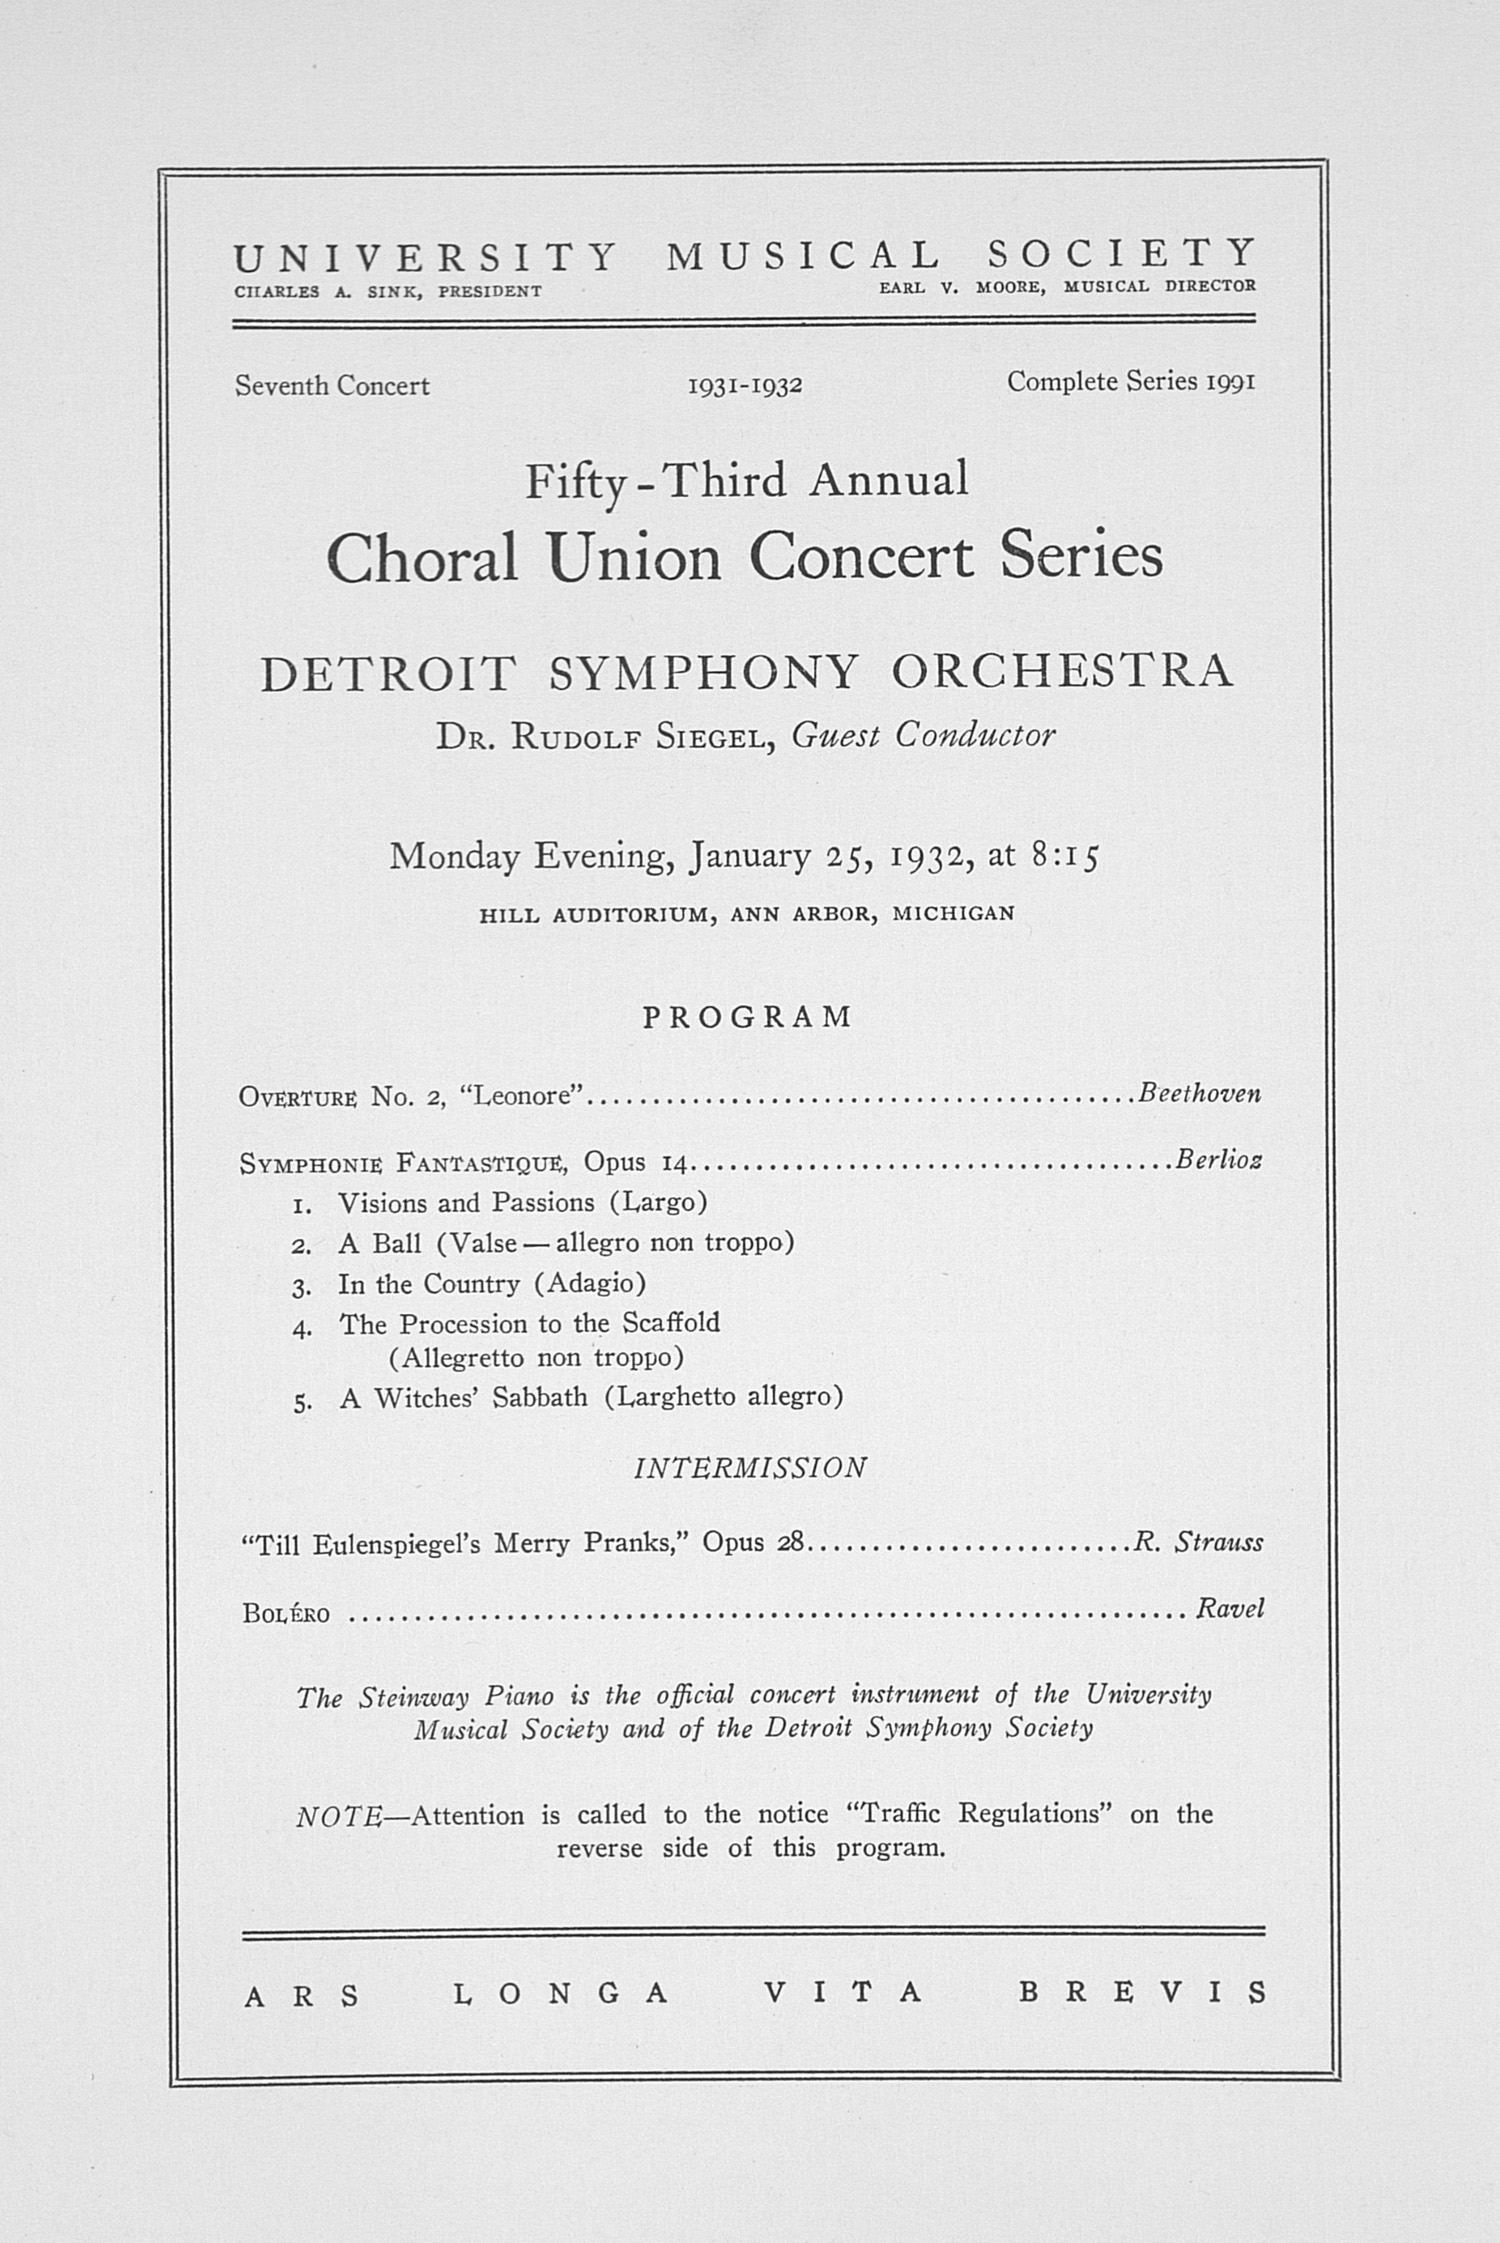 UMS Concert Program, January 25, 1932: Fifty-third Annual Choral Union Concert Series -- Detroit Symphony Orchestra image